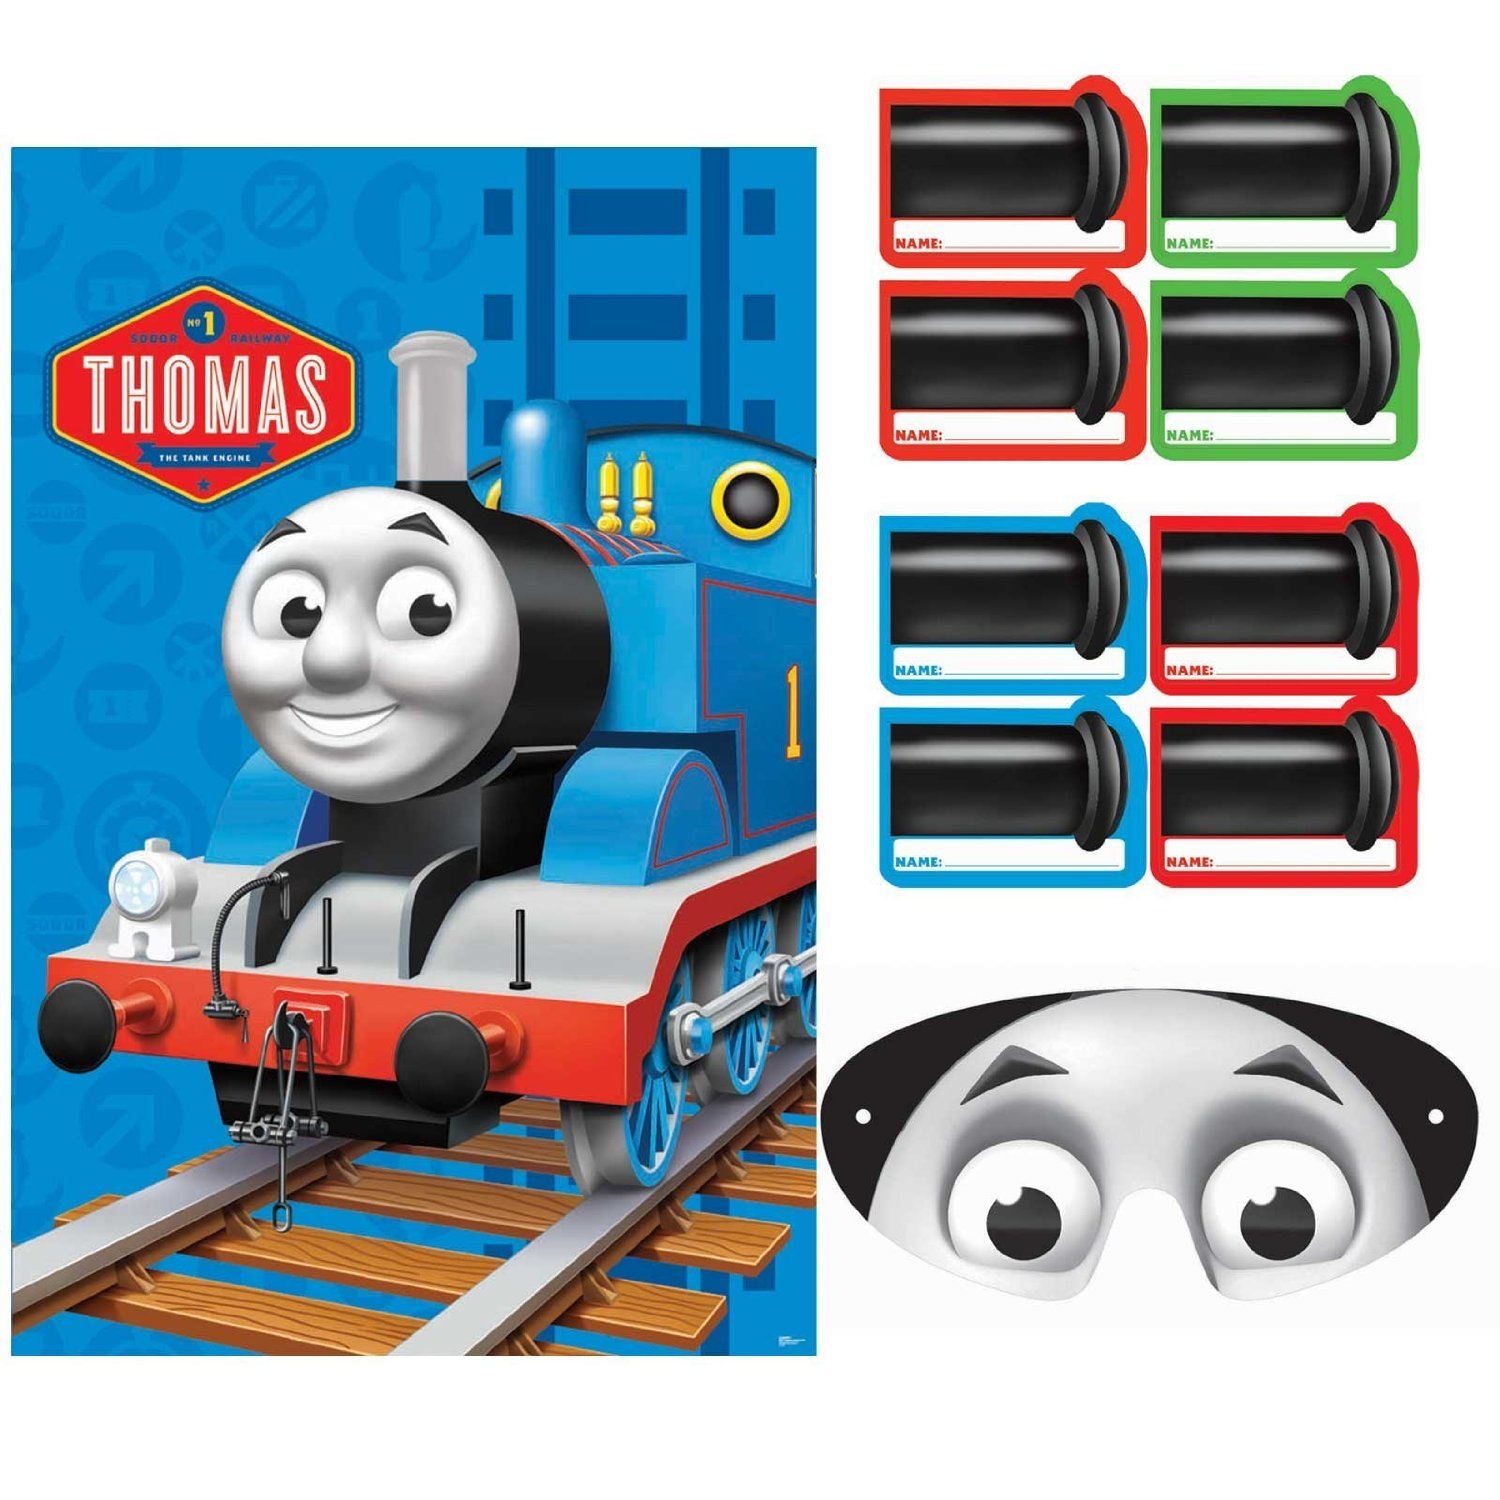 - Thomas The Train Birthday Party Games, Ideas, And Printables!